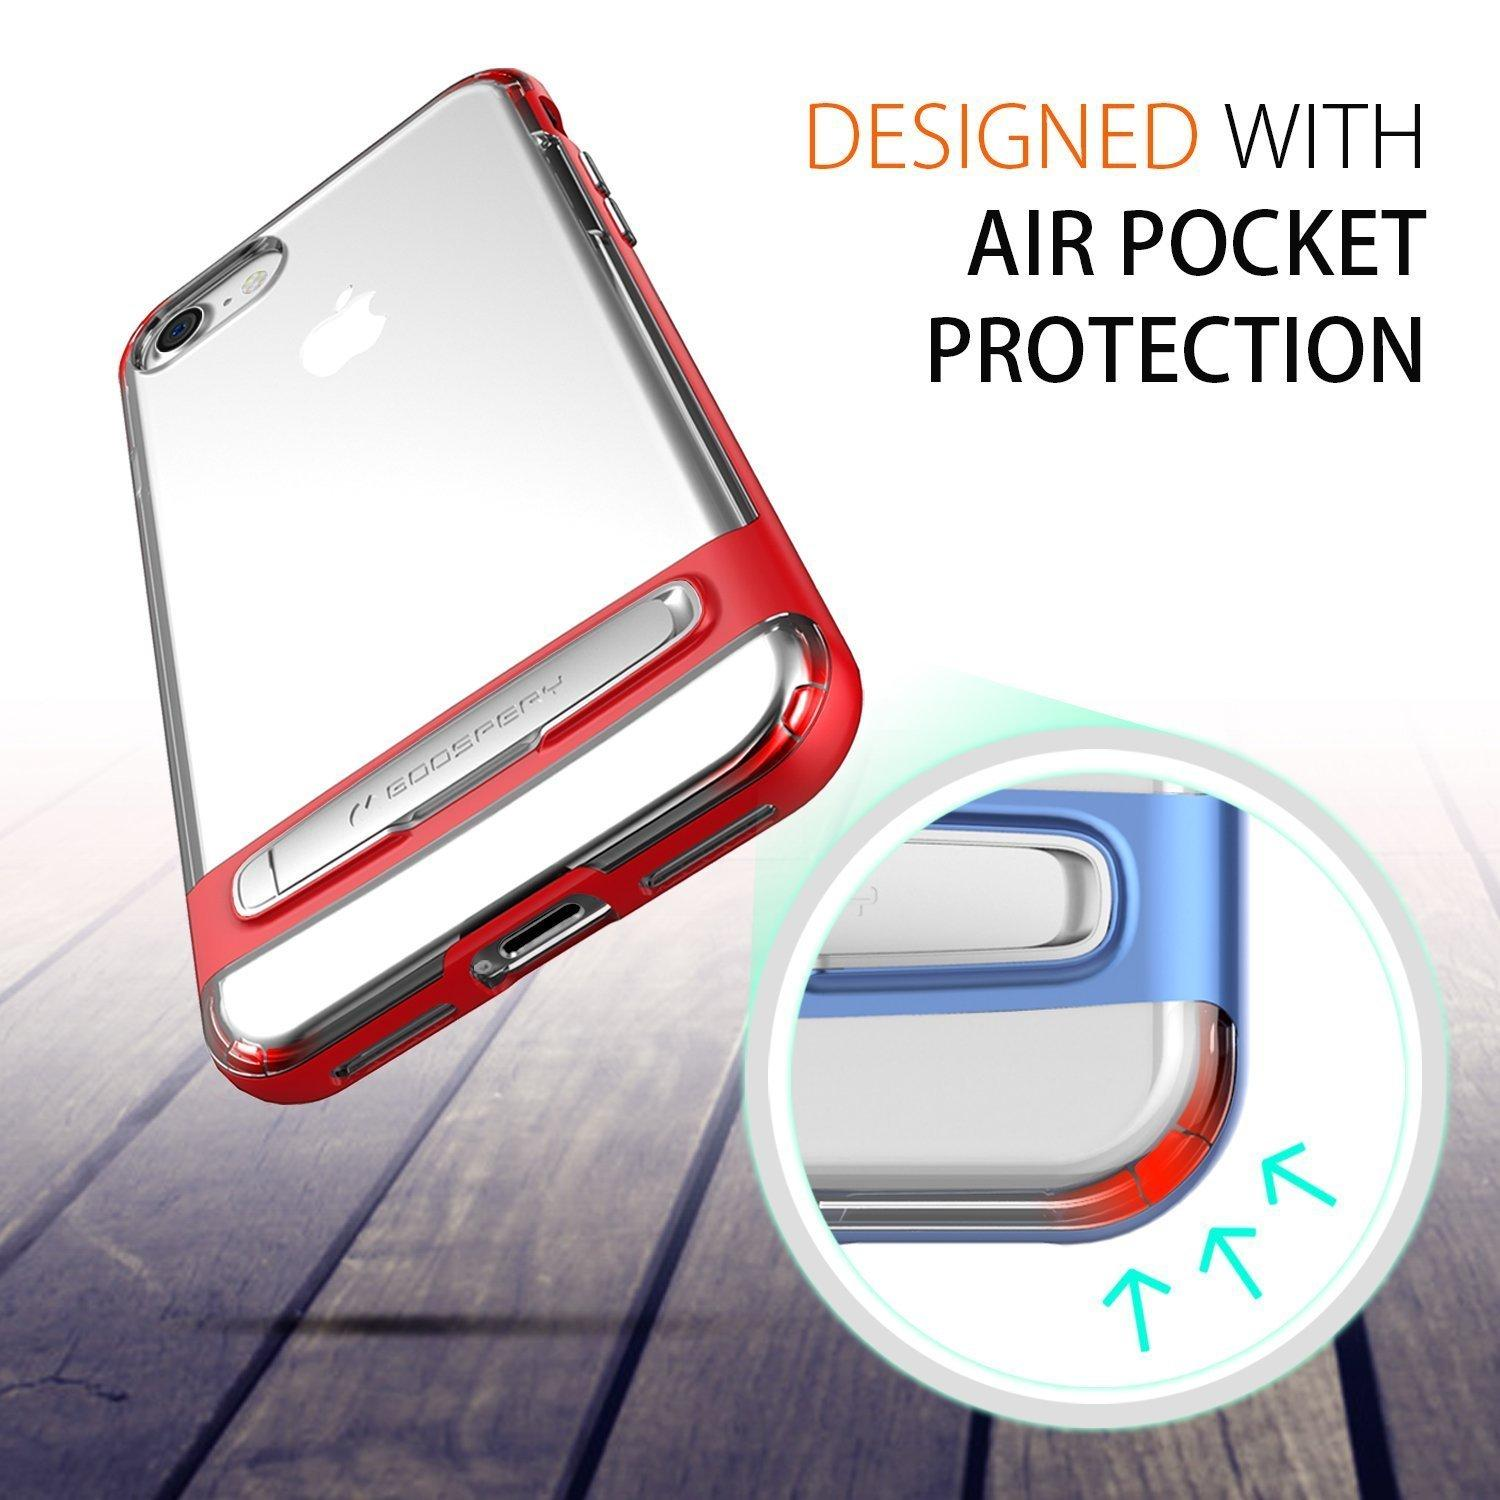 Fitur Mercury Dream Bumper Hybrid Case For Iphone X Red Dan Harga Goospery Soft Feeling Jelly Mint 3